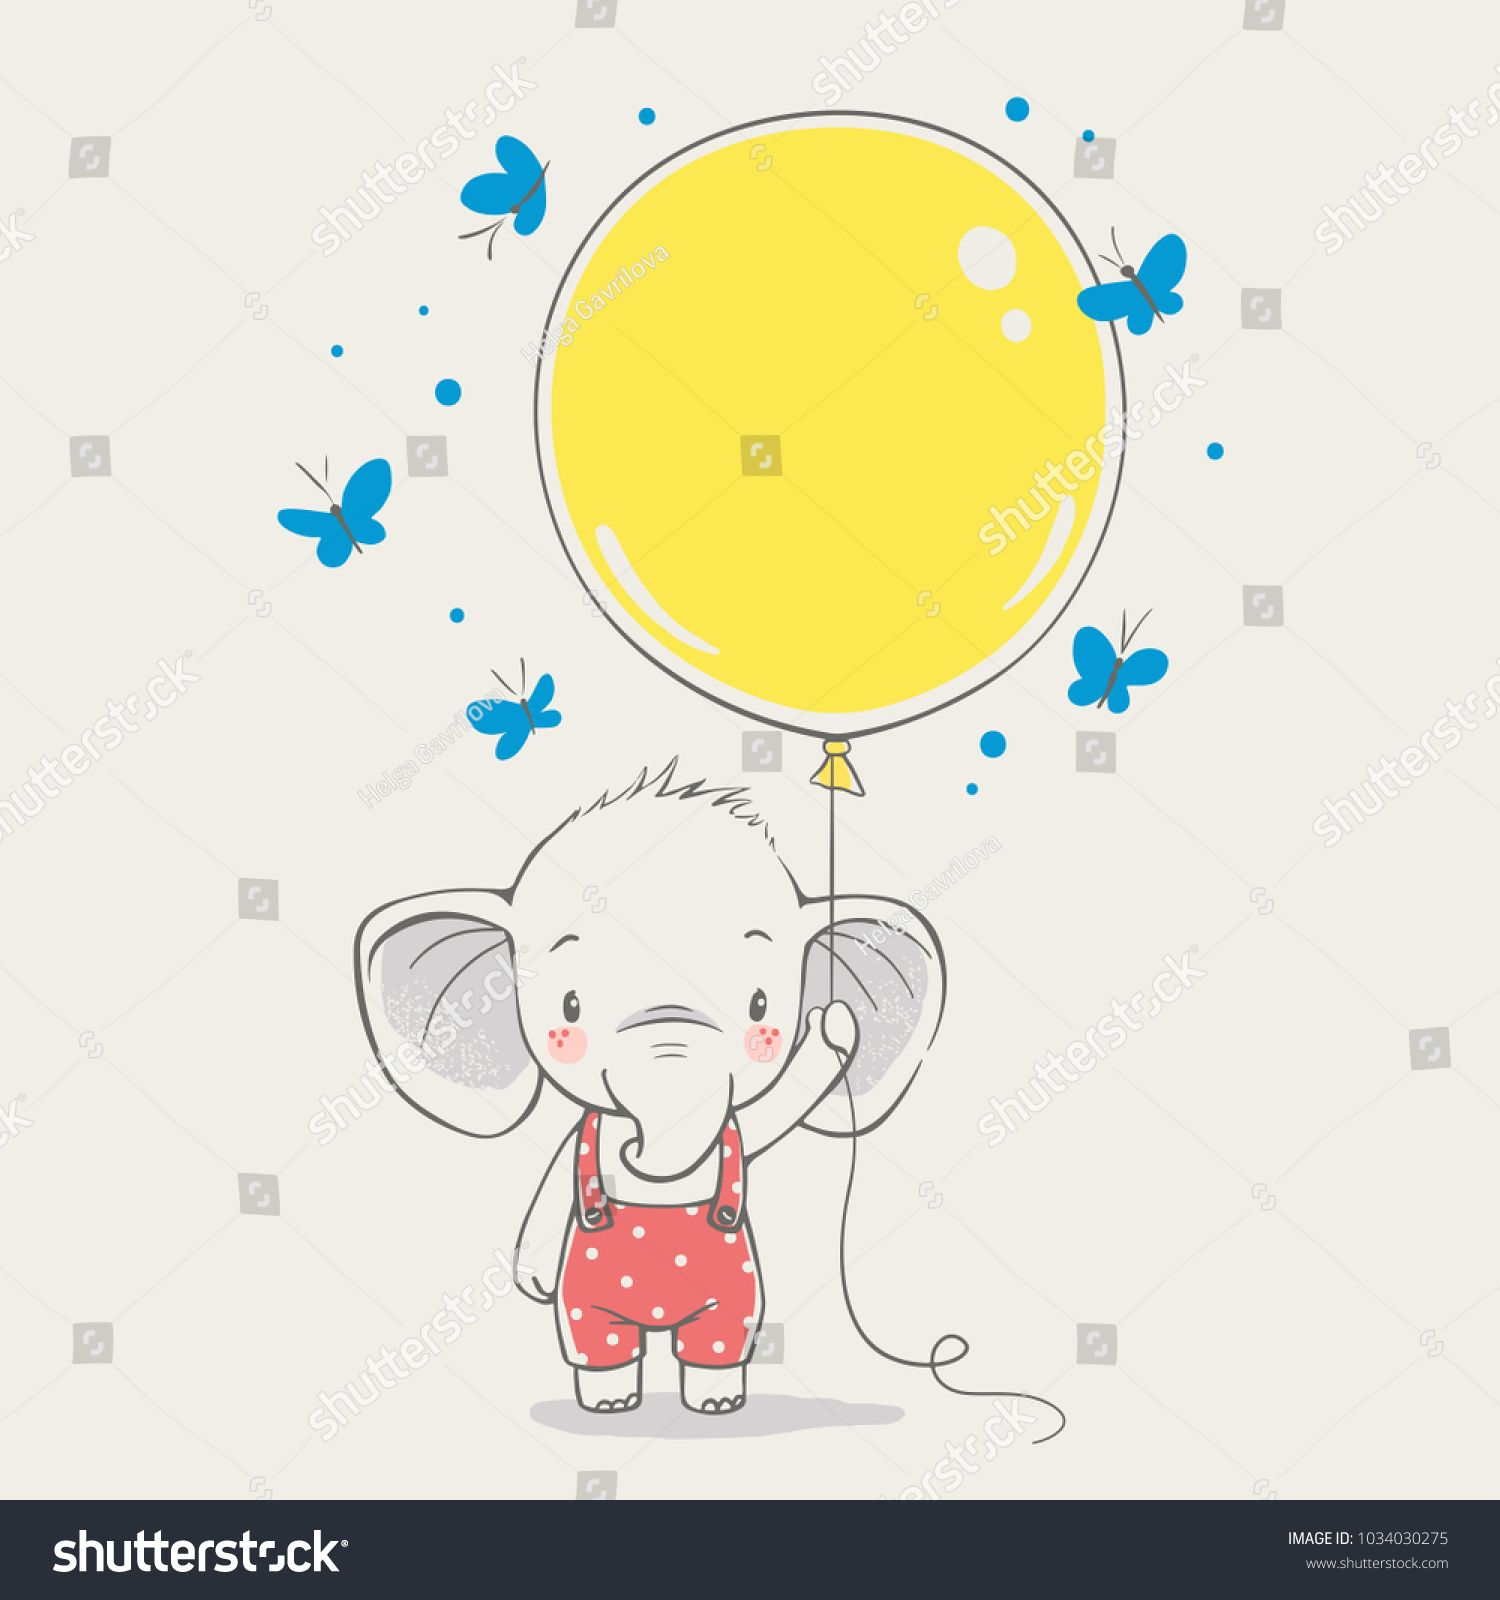 Cute Elephant With Balloon Cartoon Hand Drawn Vector Illustration Can Be Used For T Shirt Print Kids Wear Fashion Design Baby Shower I Fashion Design For Kids [ 1600 x 1500 Pixel ]